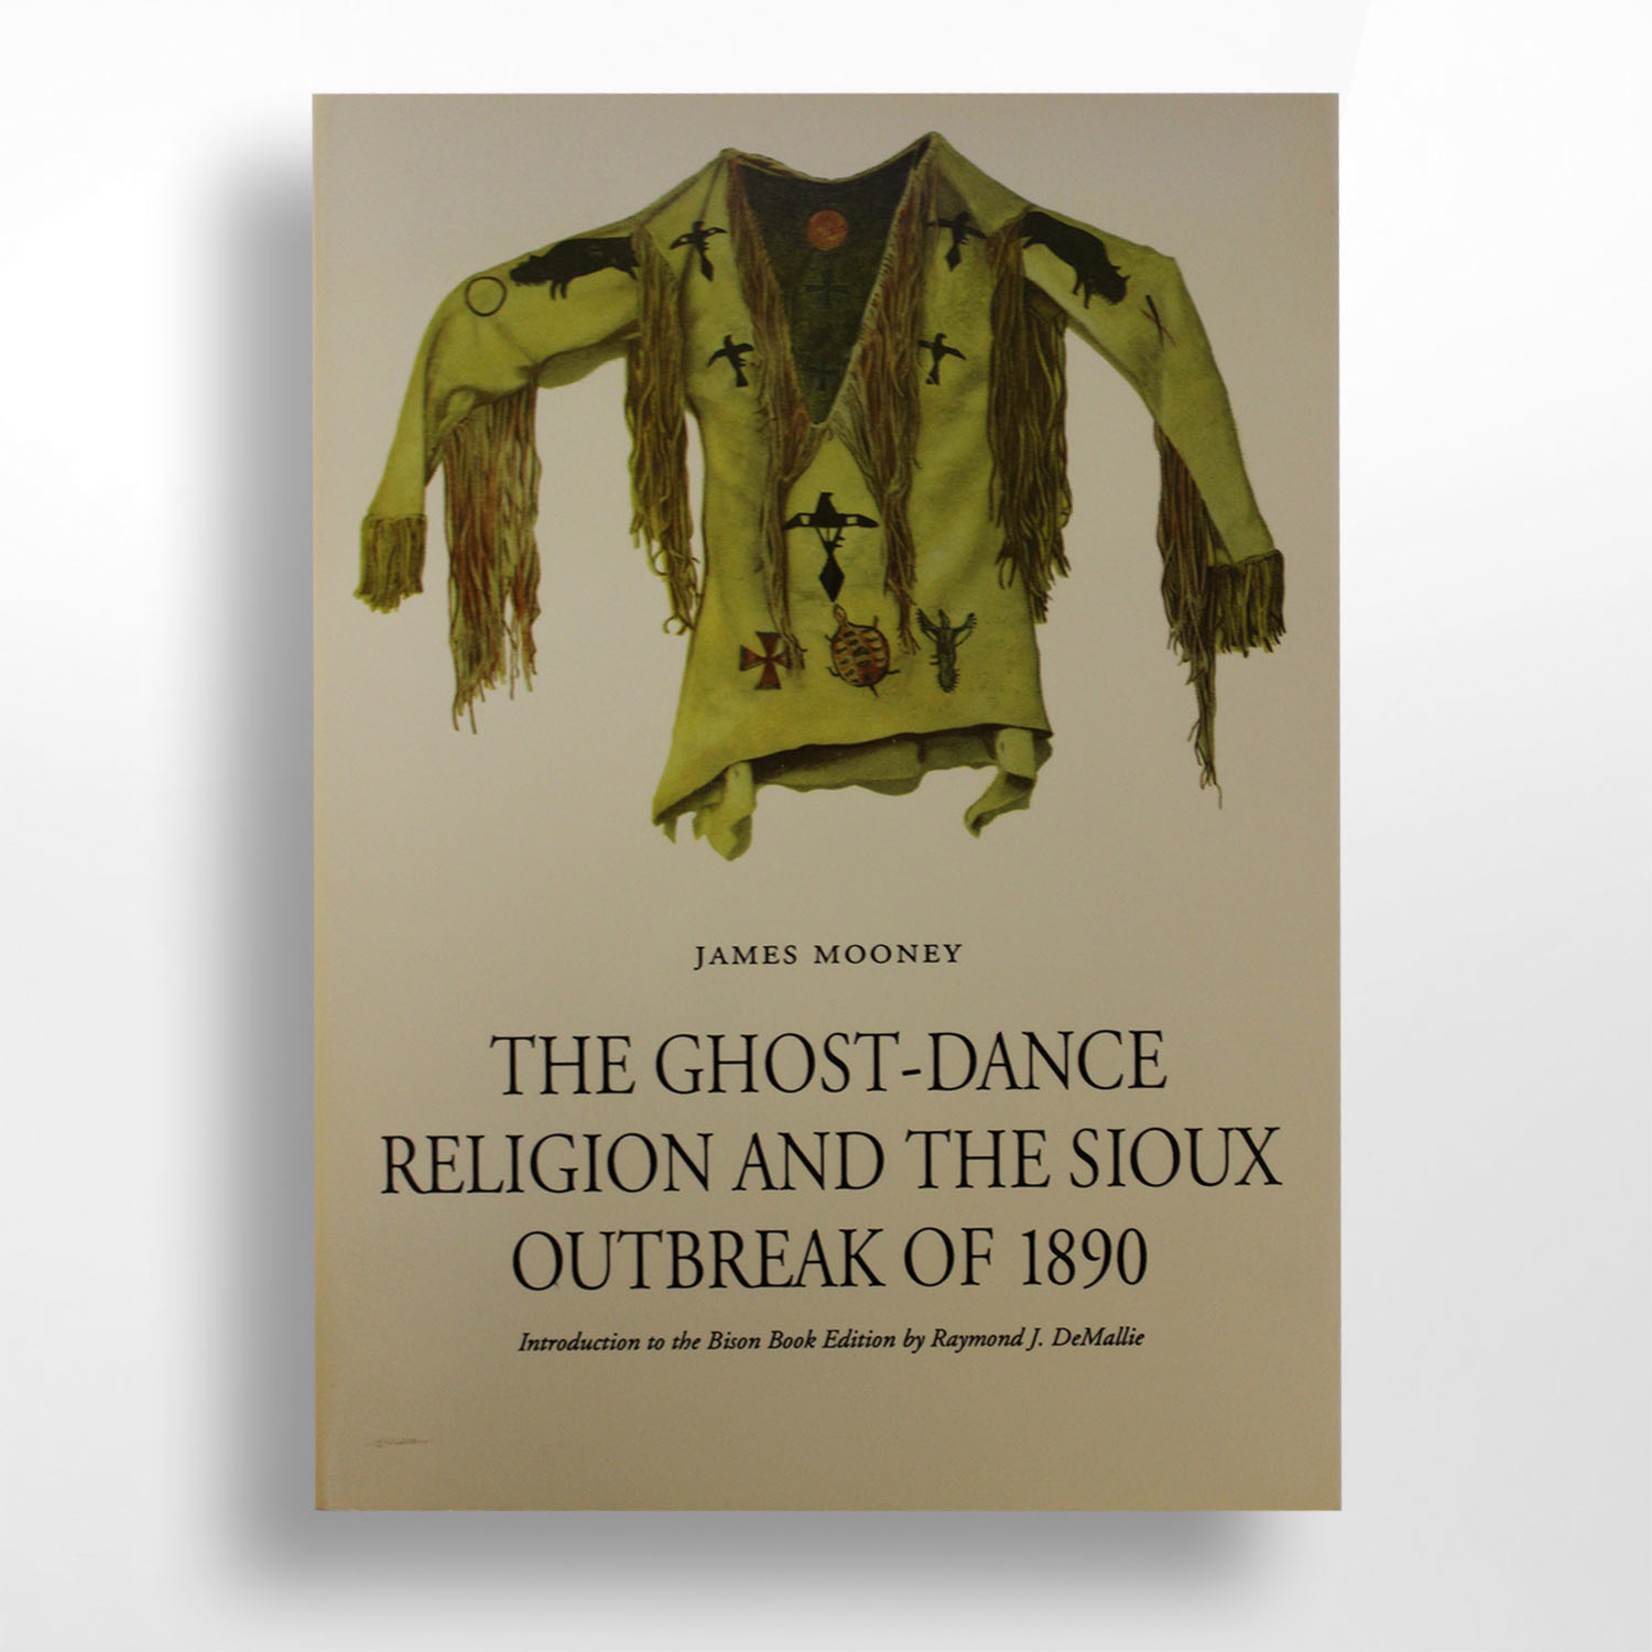 Ingram The Ghost-Dance Religion and The Sioux Outbreak of 1890